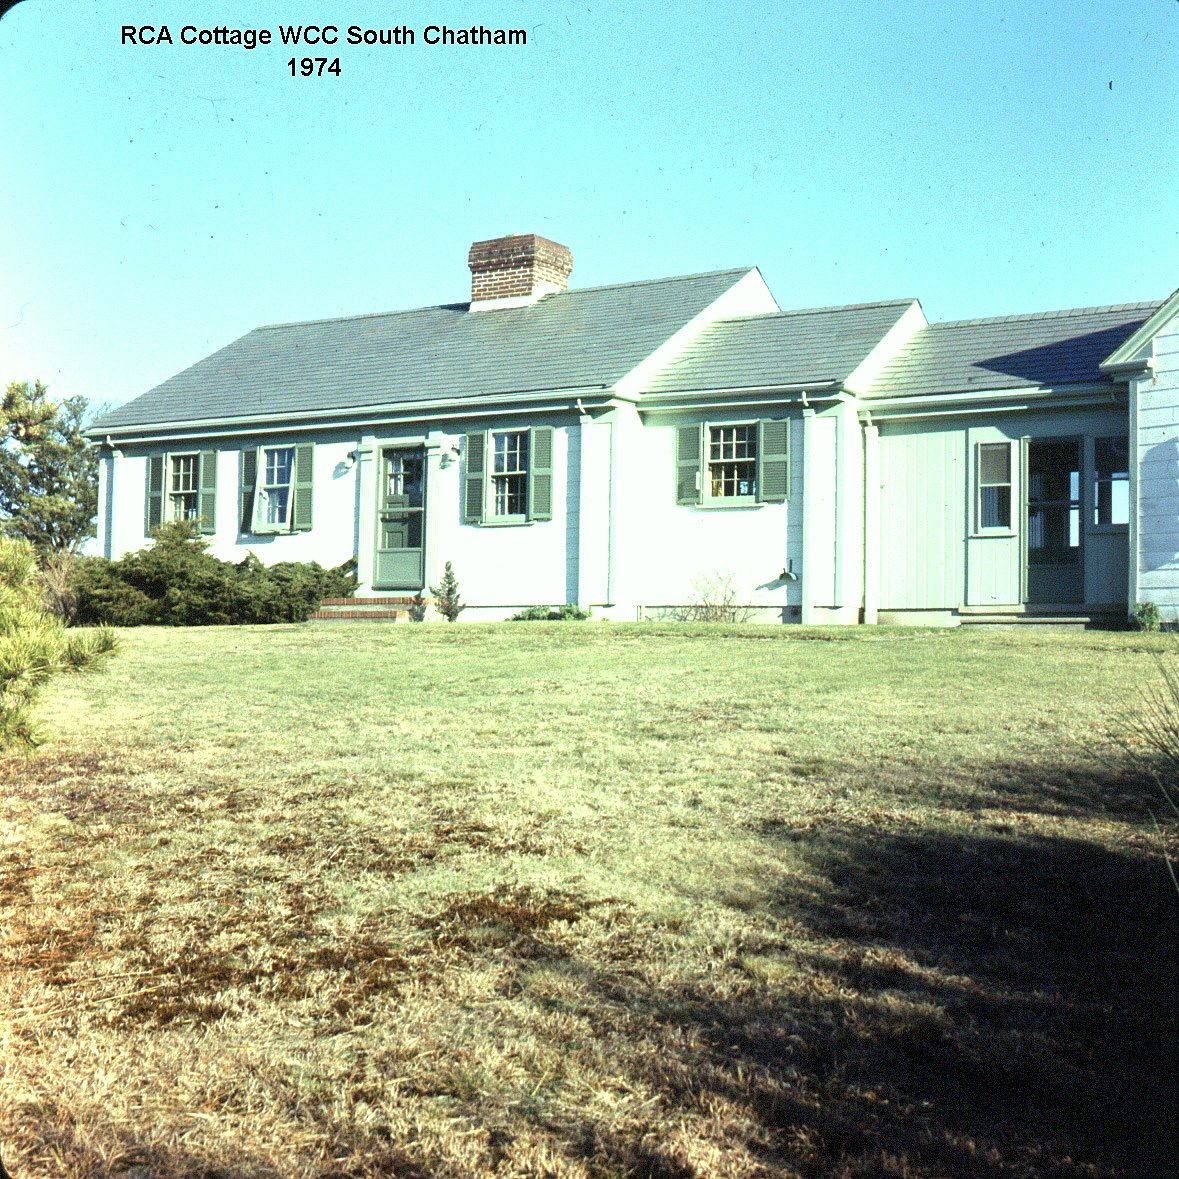 WCC cottage 74